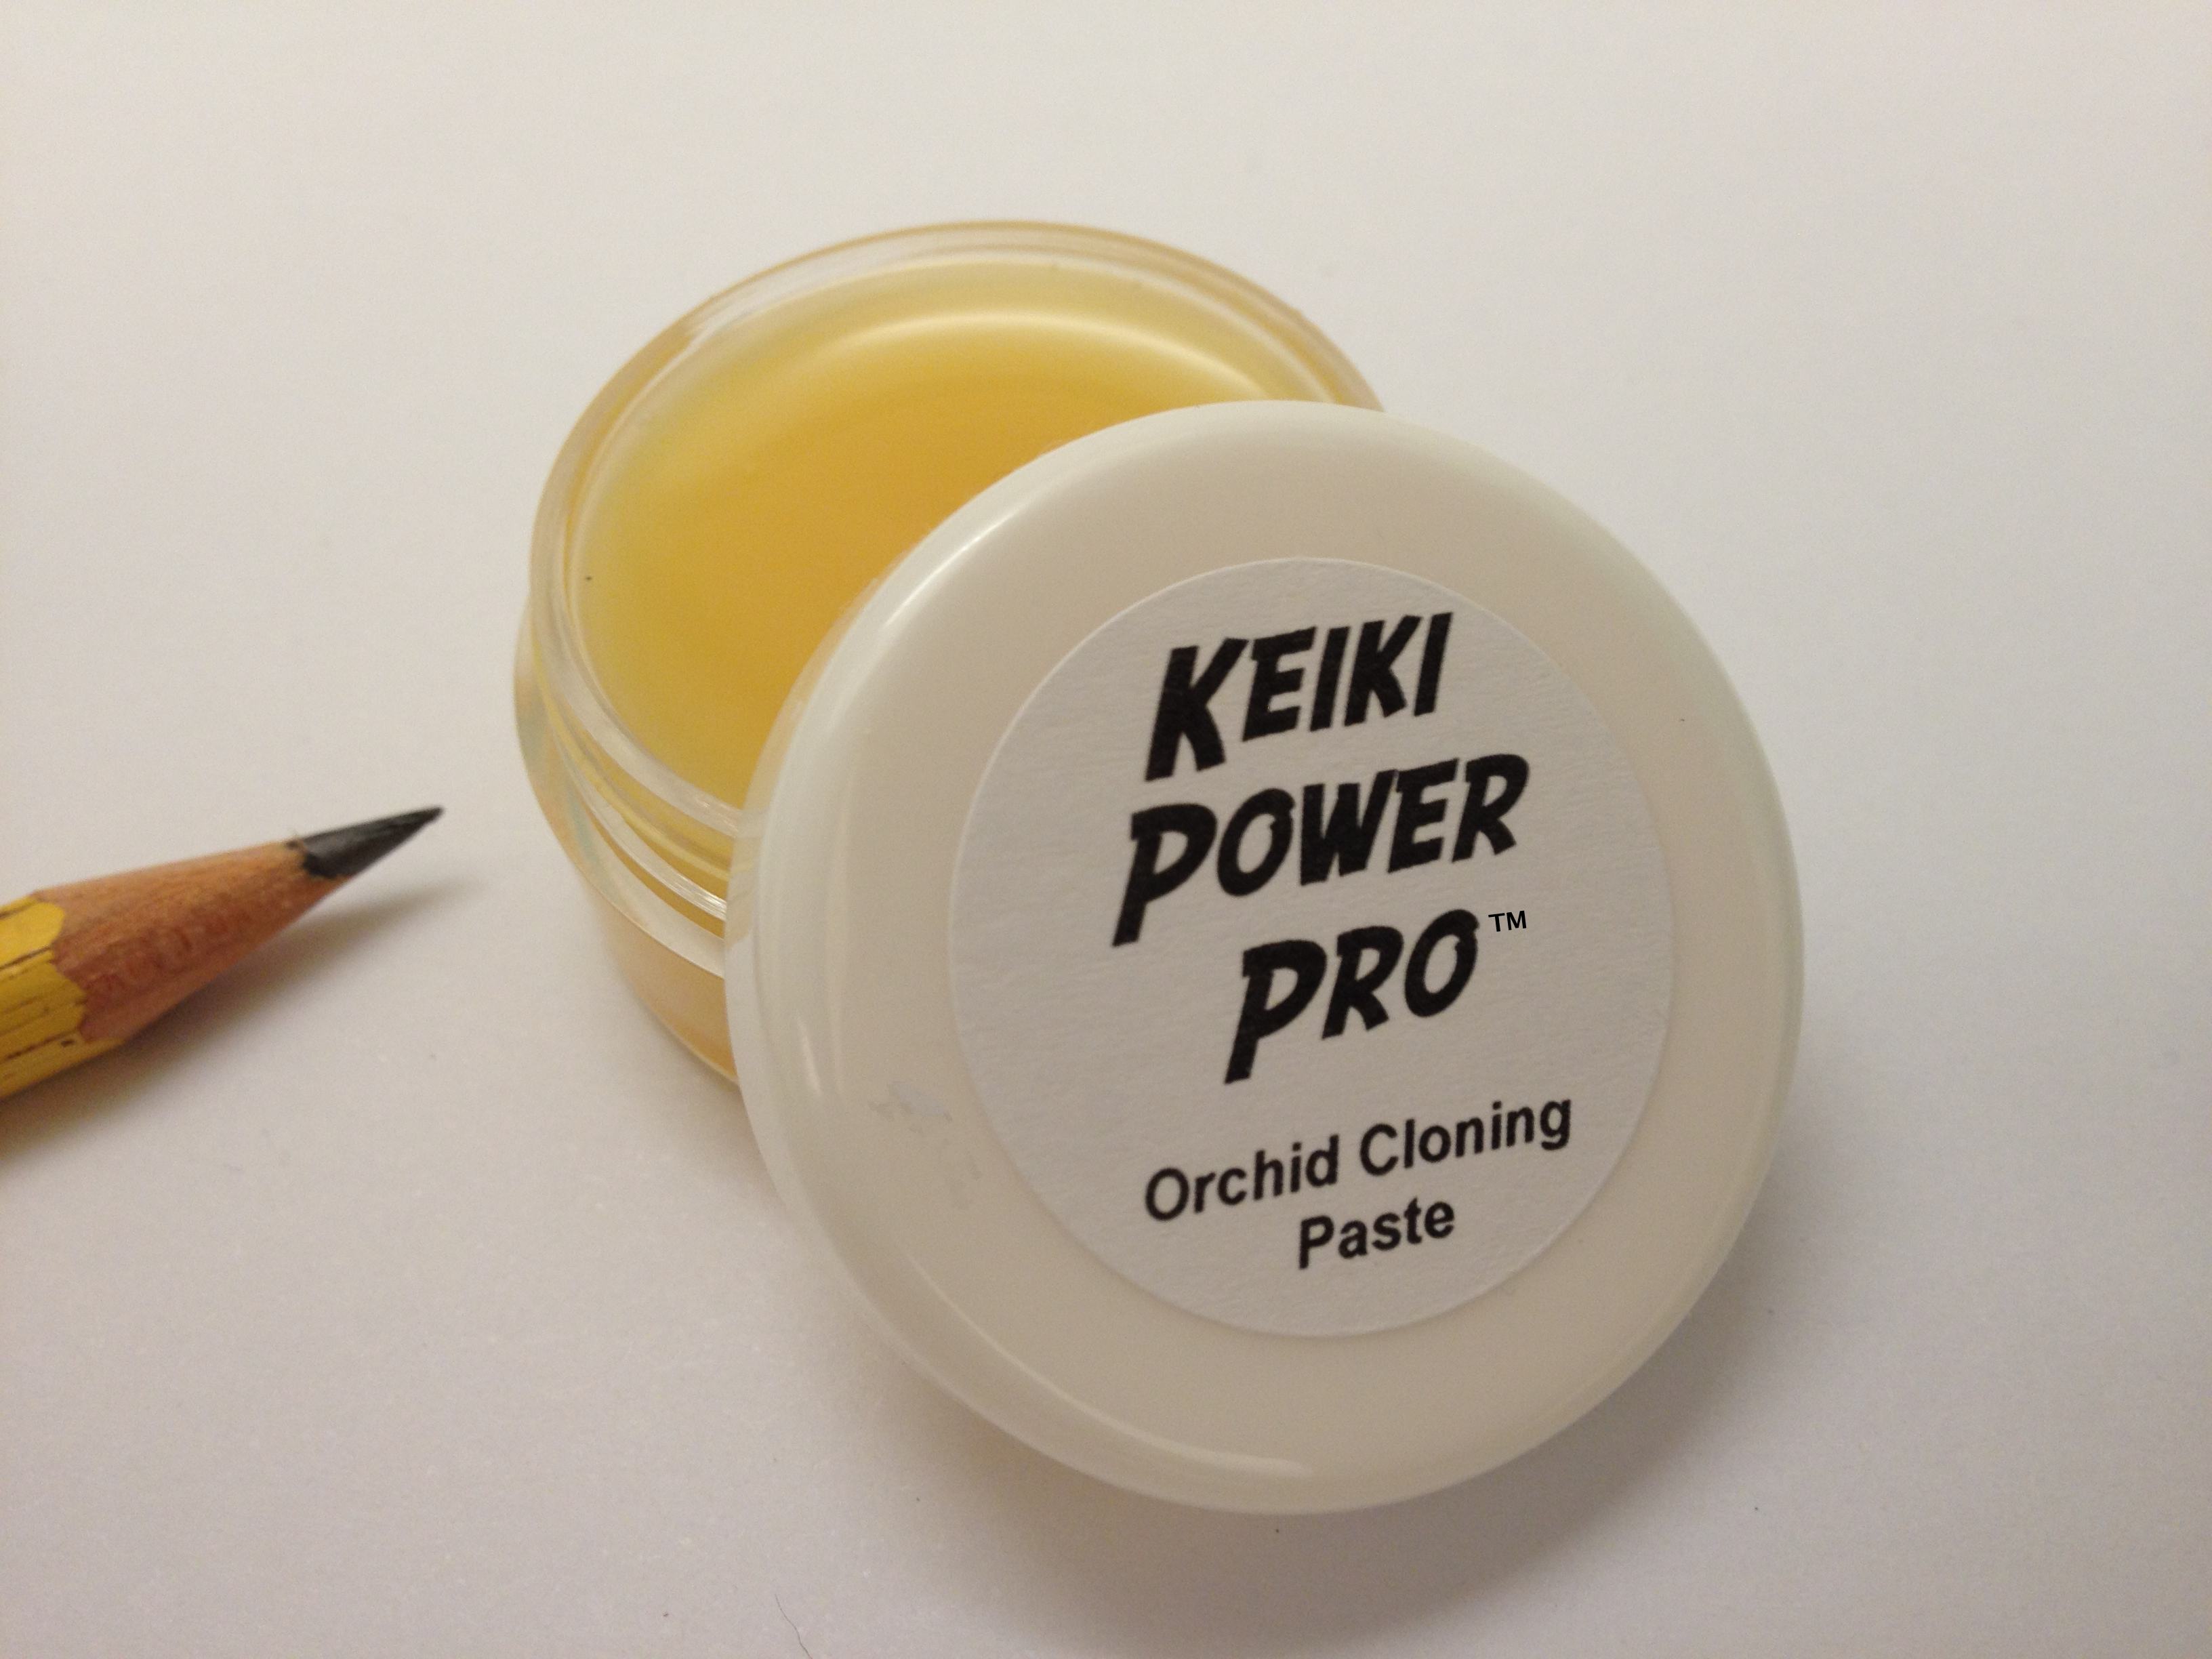 Keiki Power Pro 10g jar white cap label scale no annotations Amazon FBA